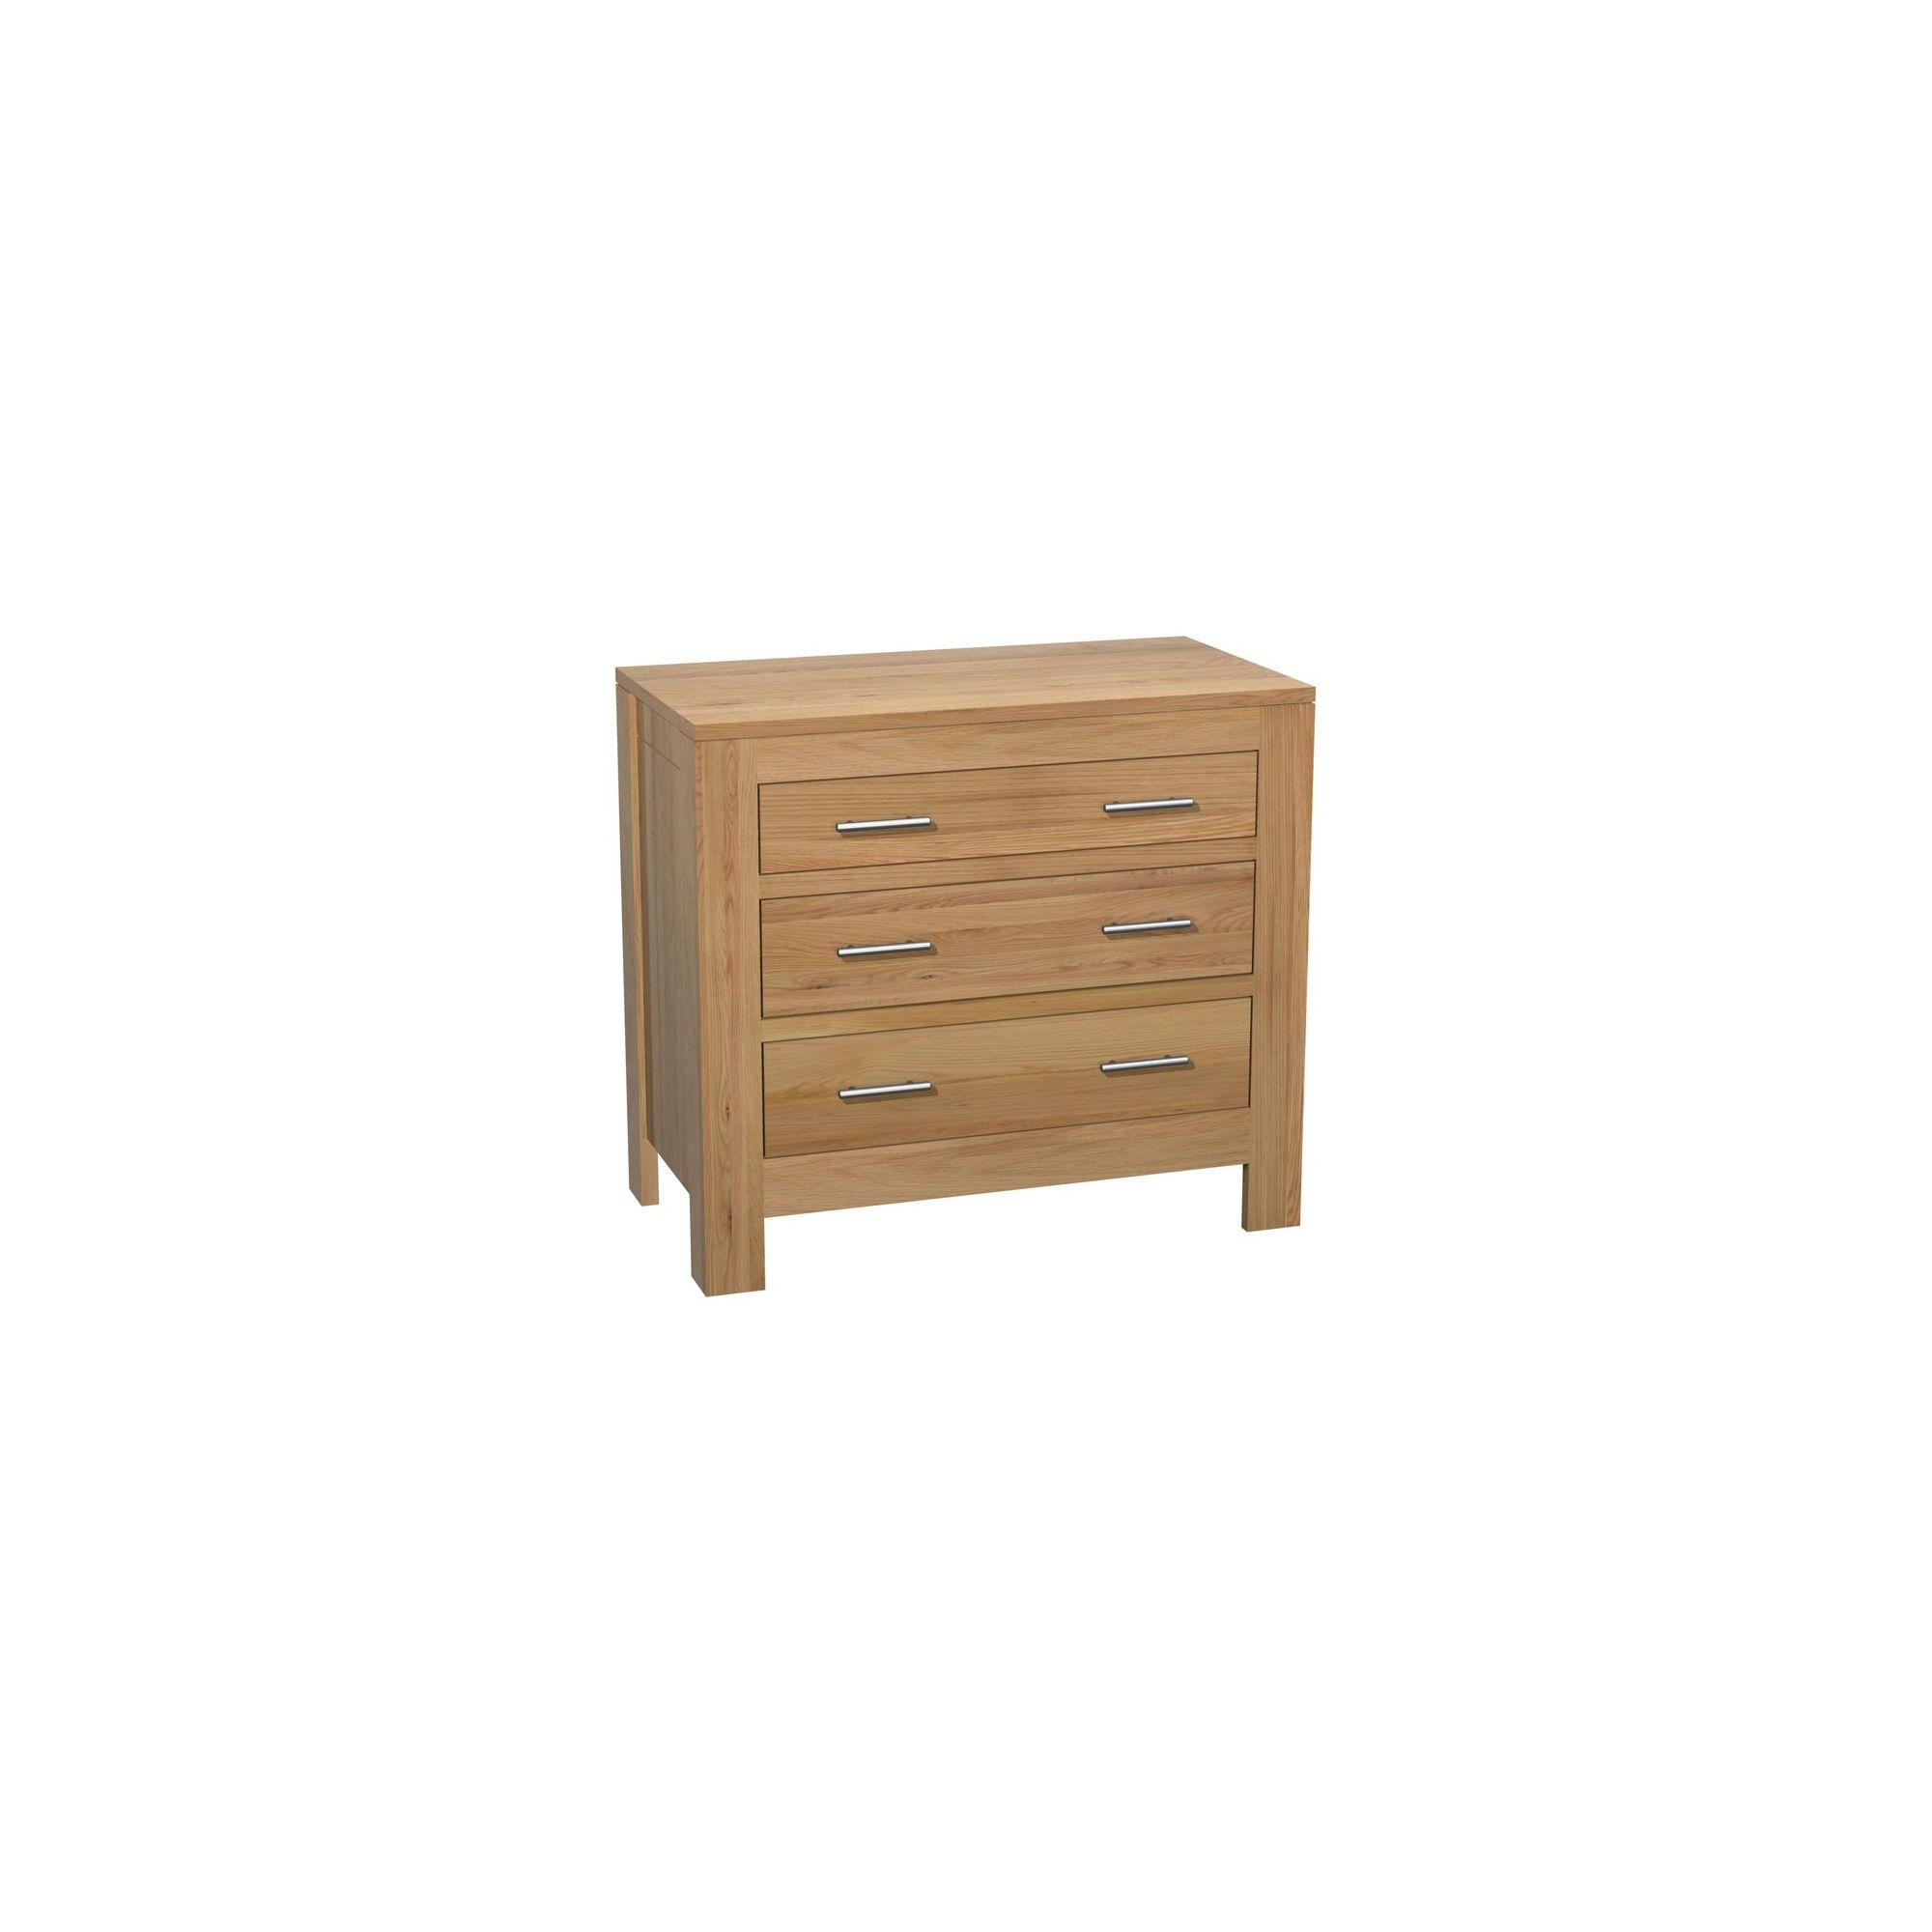 Kelburn Furniture Milano 3 Drawer Chest in Clear Satin Lacquer at Tesco Direct